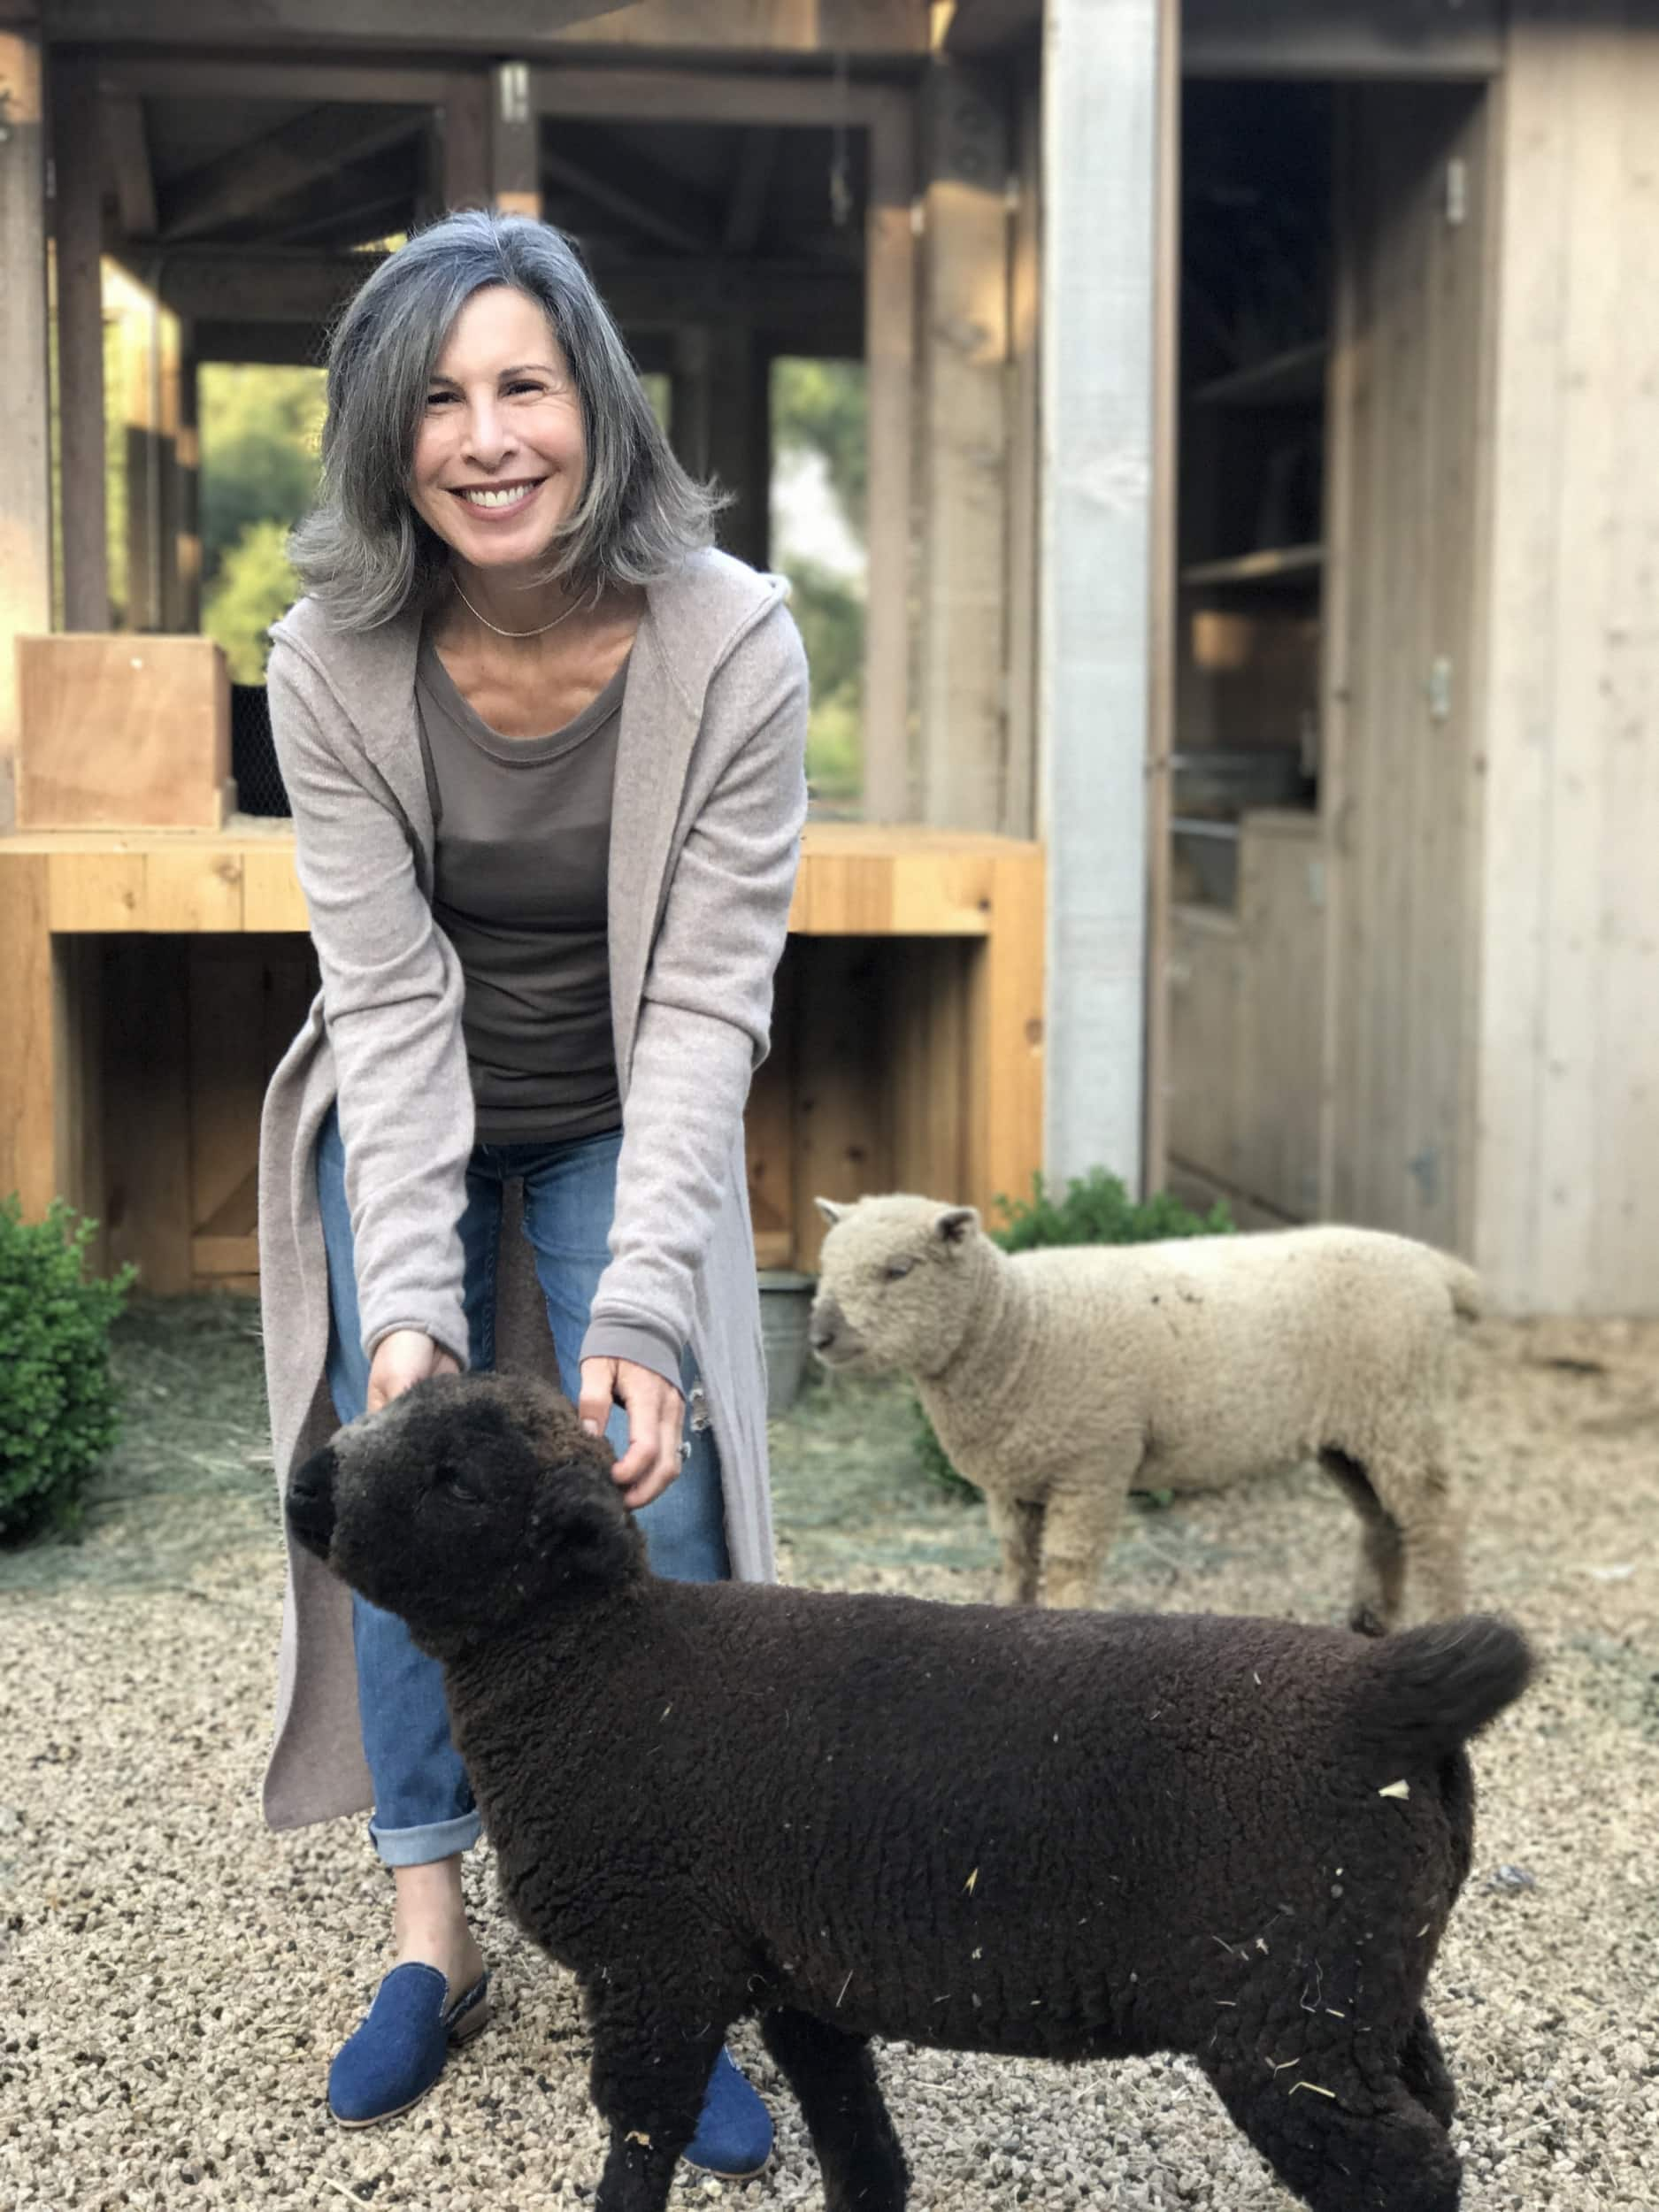 brook giannetti with sheep